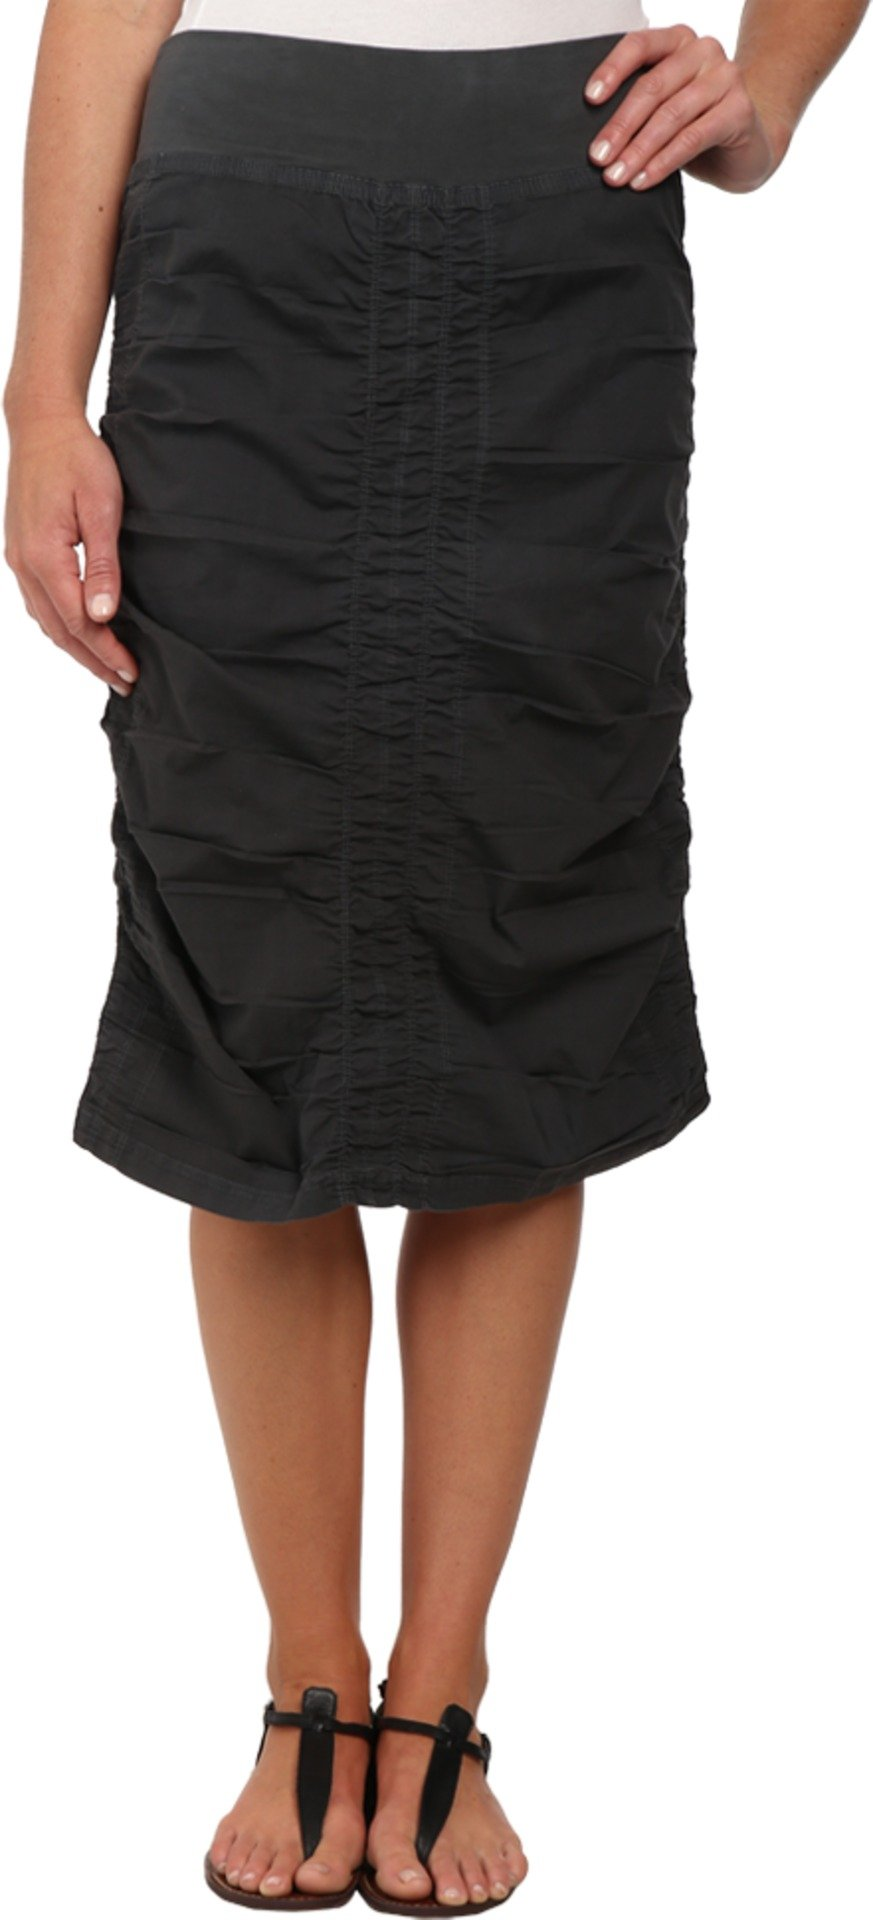 XCVI Women's Trace Back Skirt Black Skirt